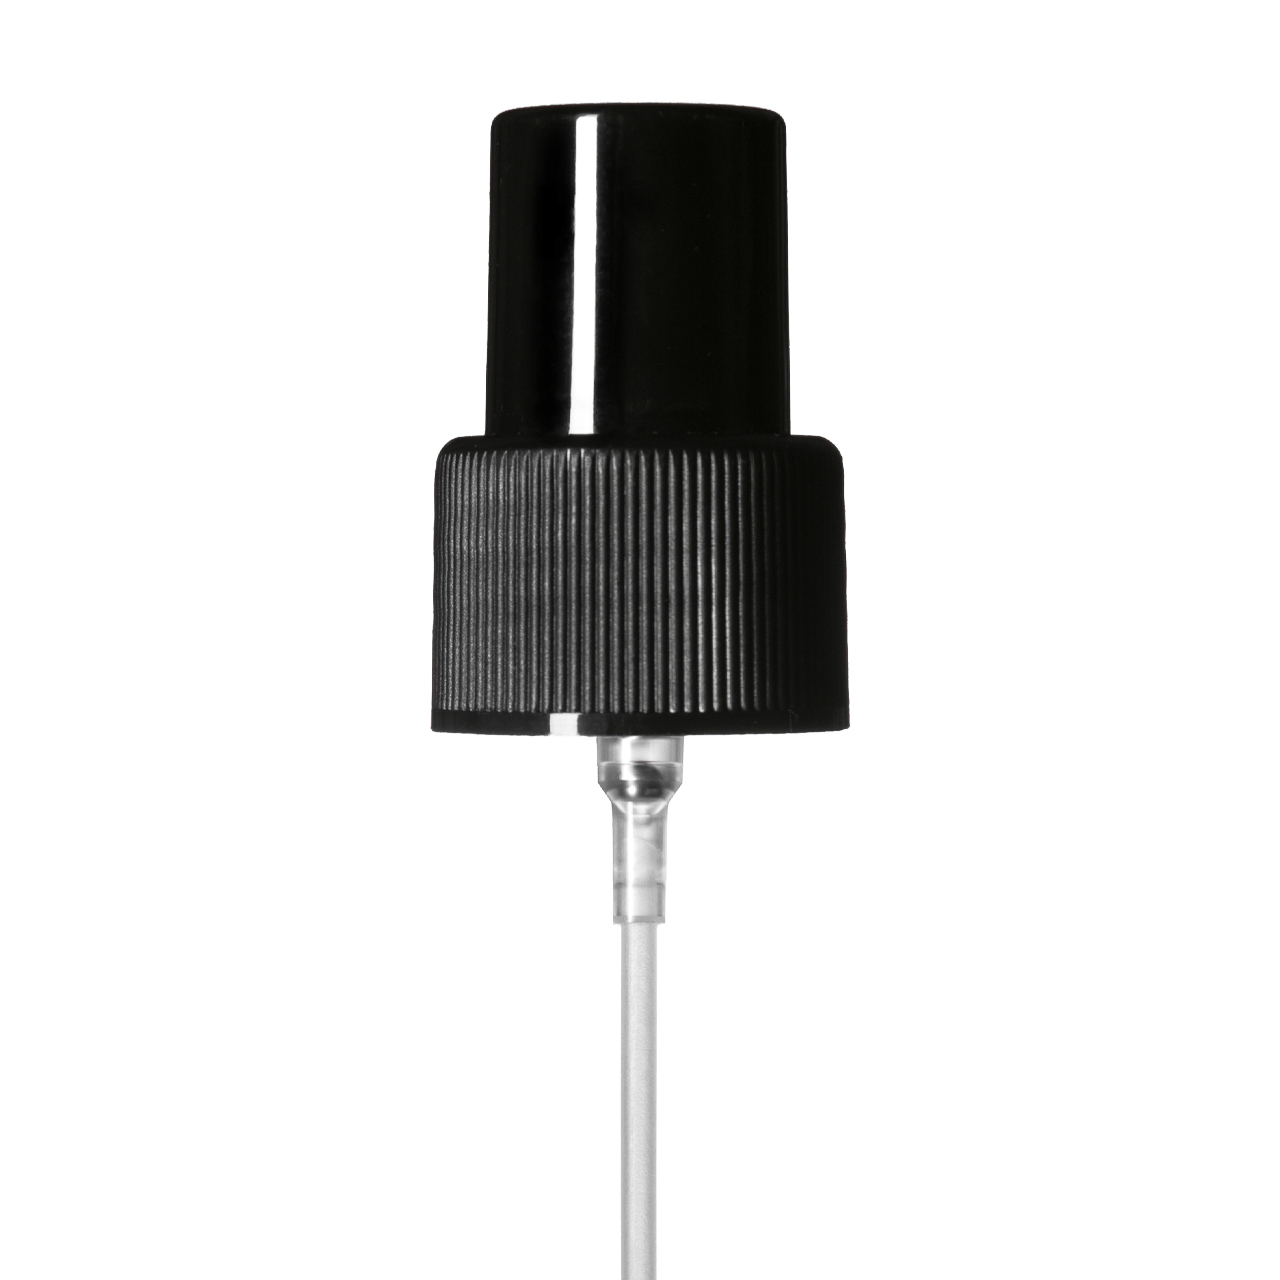 Mist sprayer 24/410, PP, black, ribbed, dose 0.14 ml, with black overcap (for Virgo 200 ml & Orion 200 ml)